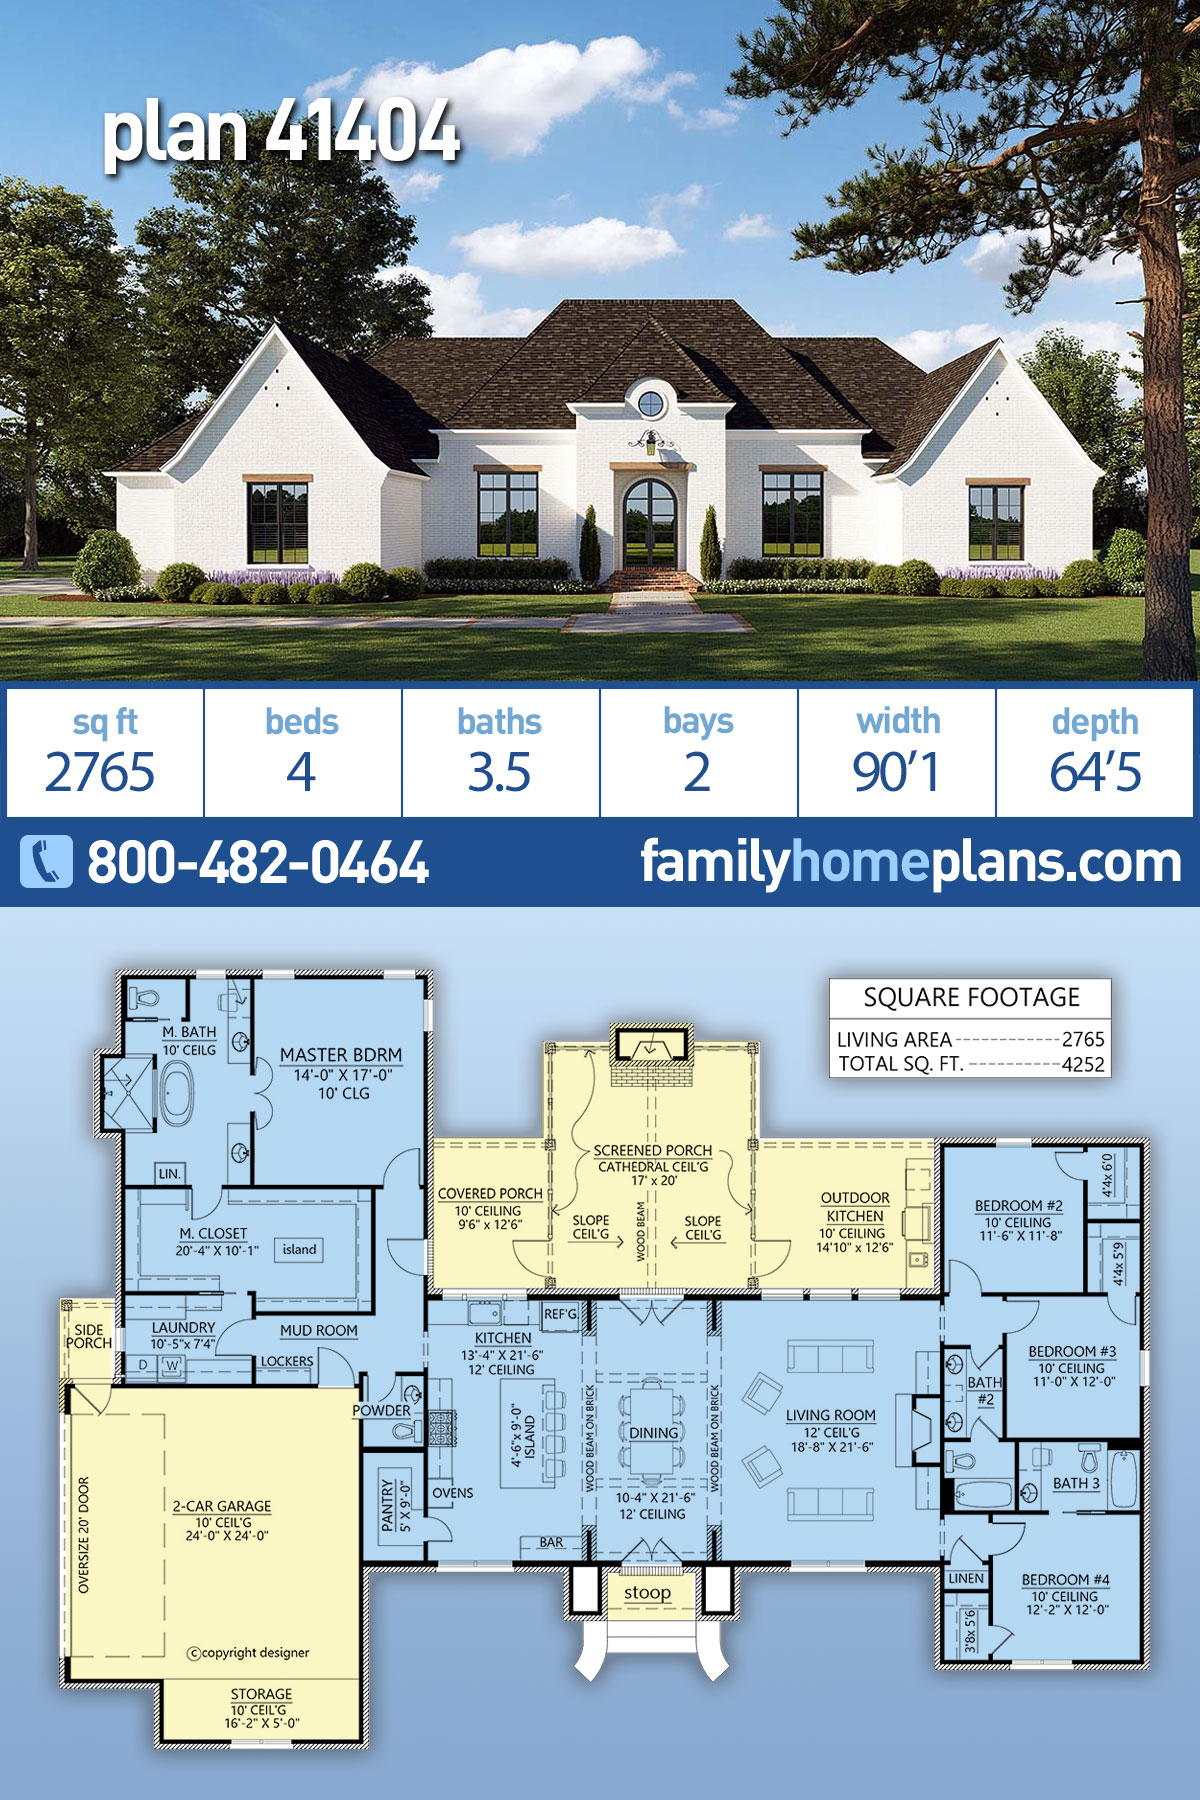 European, French Country, Traditional House Plan 41404 with 4 Beds , 4 Baths , 2 Car Garage